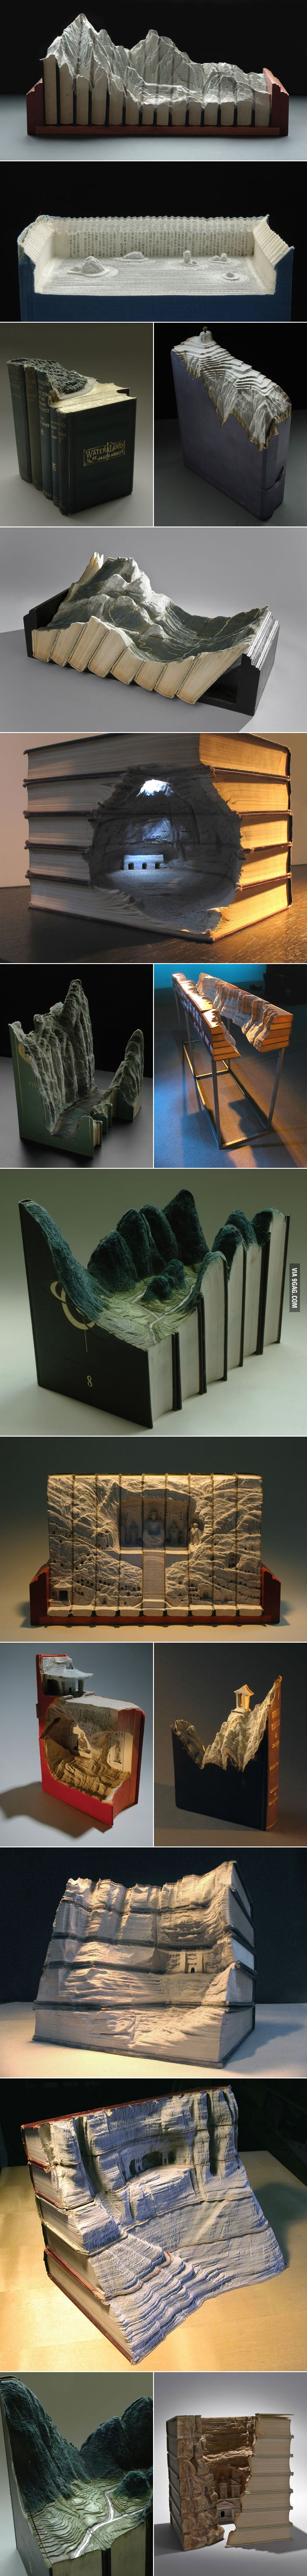 Amazing landscapes carved from books.